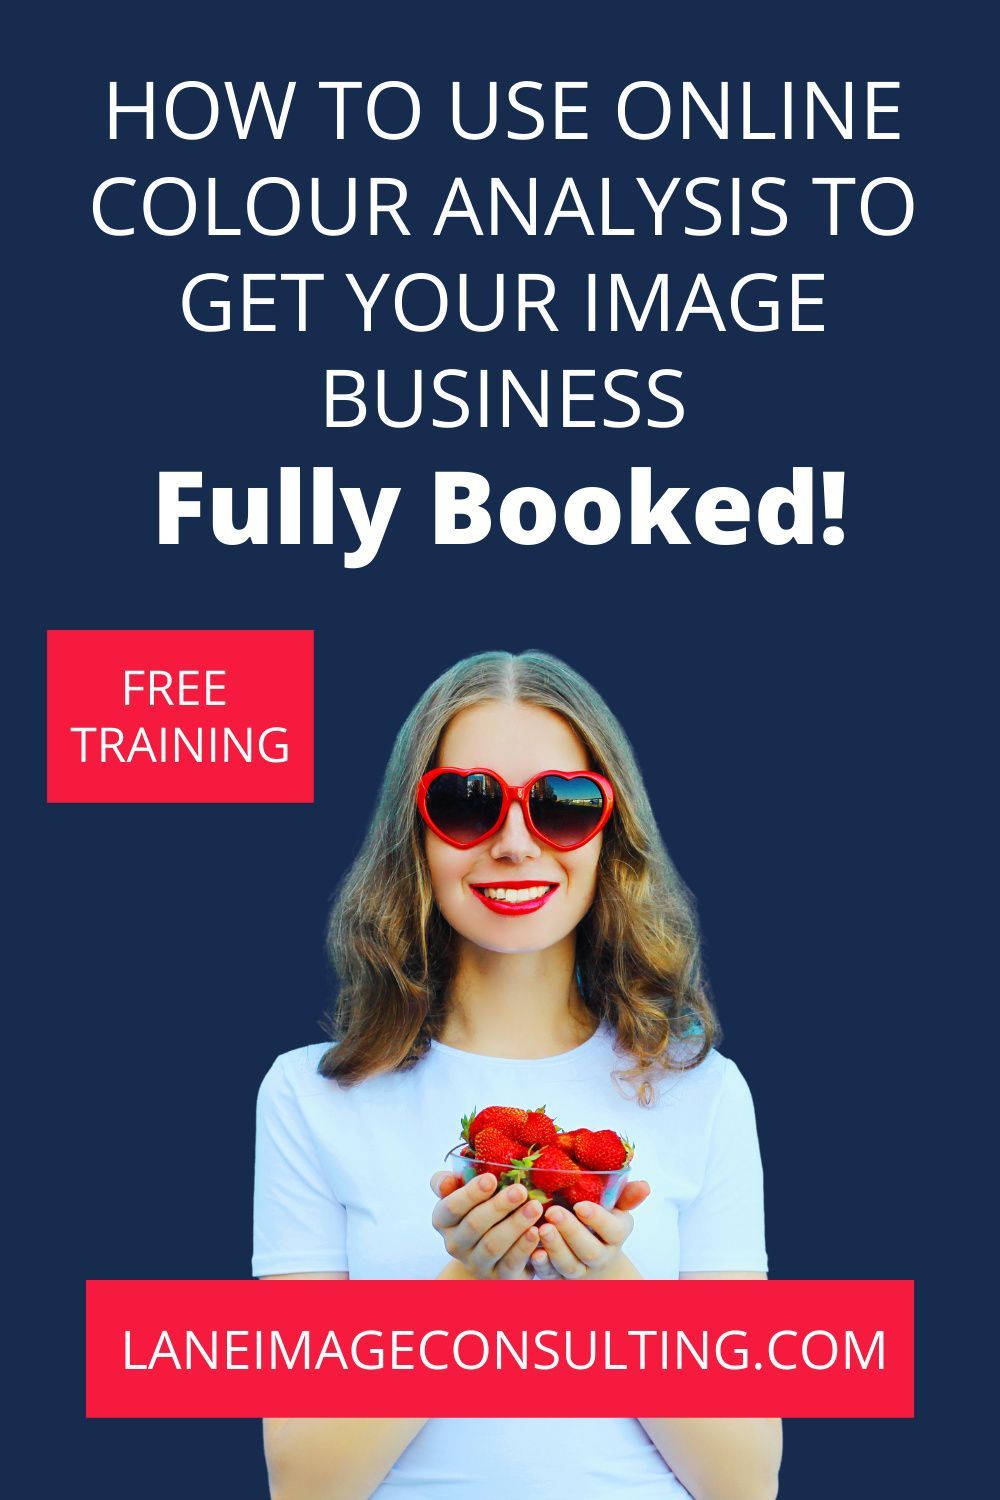 Are you an image consultant or personal stylist who craves a consistent stream of paying customers? Check out my FREE three-part training which gives you the exact same strategy I used to go from having the occasional client to my first fully booked, 10K making month. Get fully booked with skills you already have! #colouranalysis #imageconsultant #personalstylist